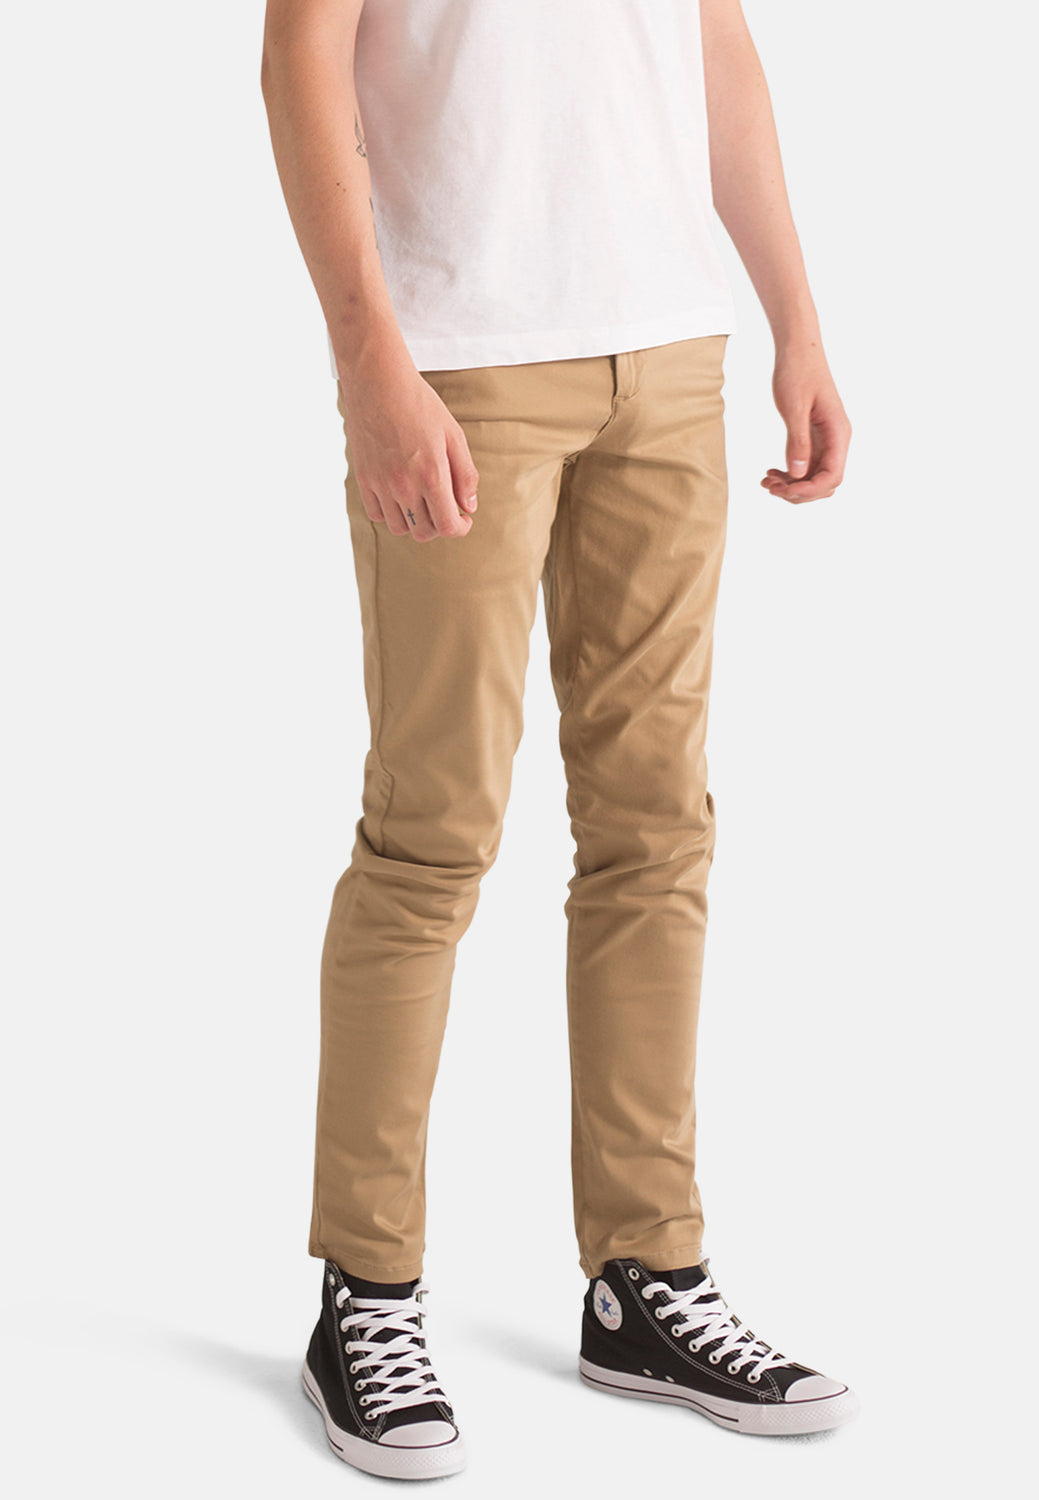 Organic Chino in Dark Buff - Monkee Genes Organic Jeans Denim - Men's Chinos Monkee Genes Official  Monkee Genes Official